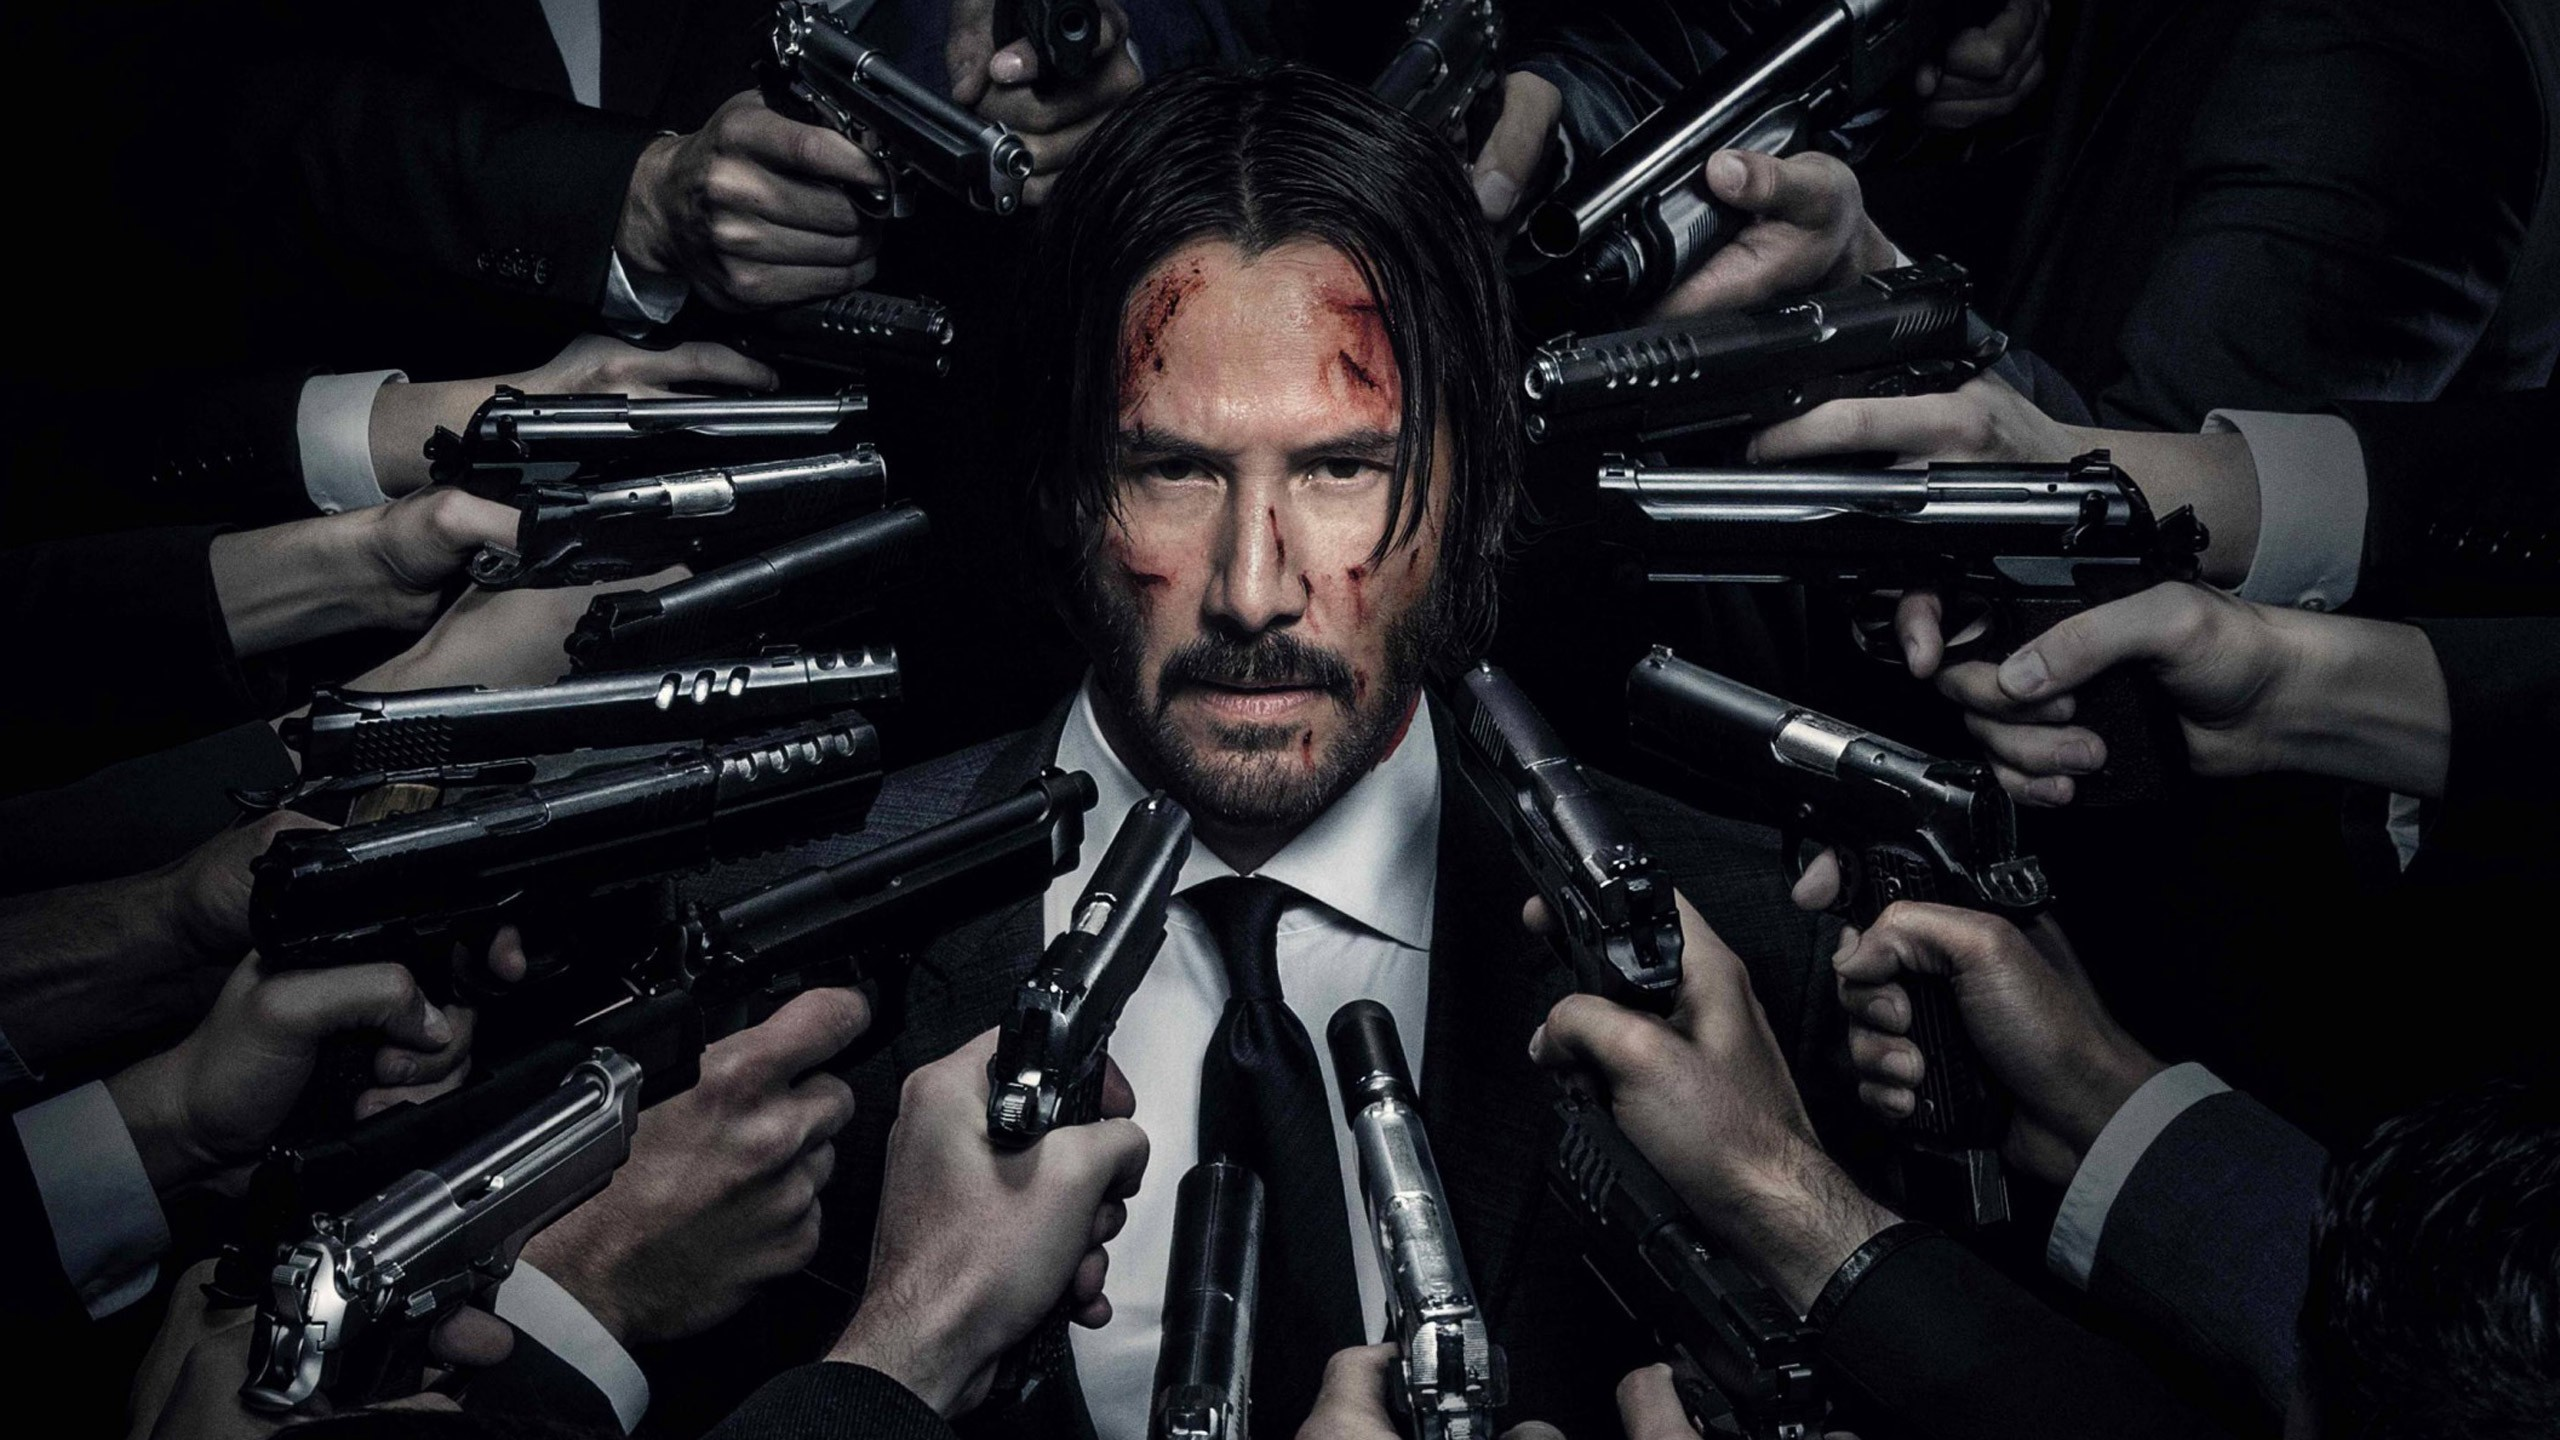 Keanu Reeves in John Wick 2